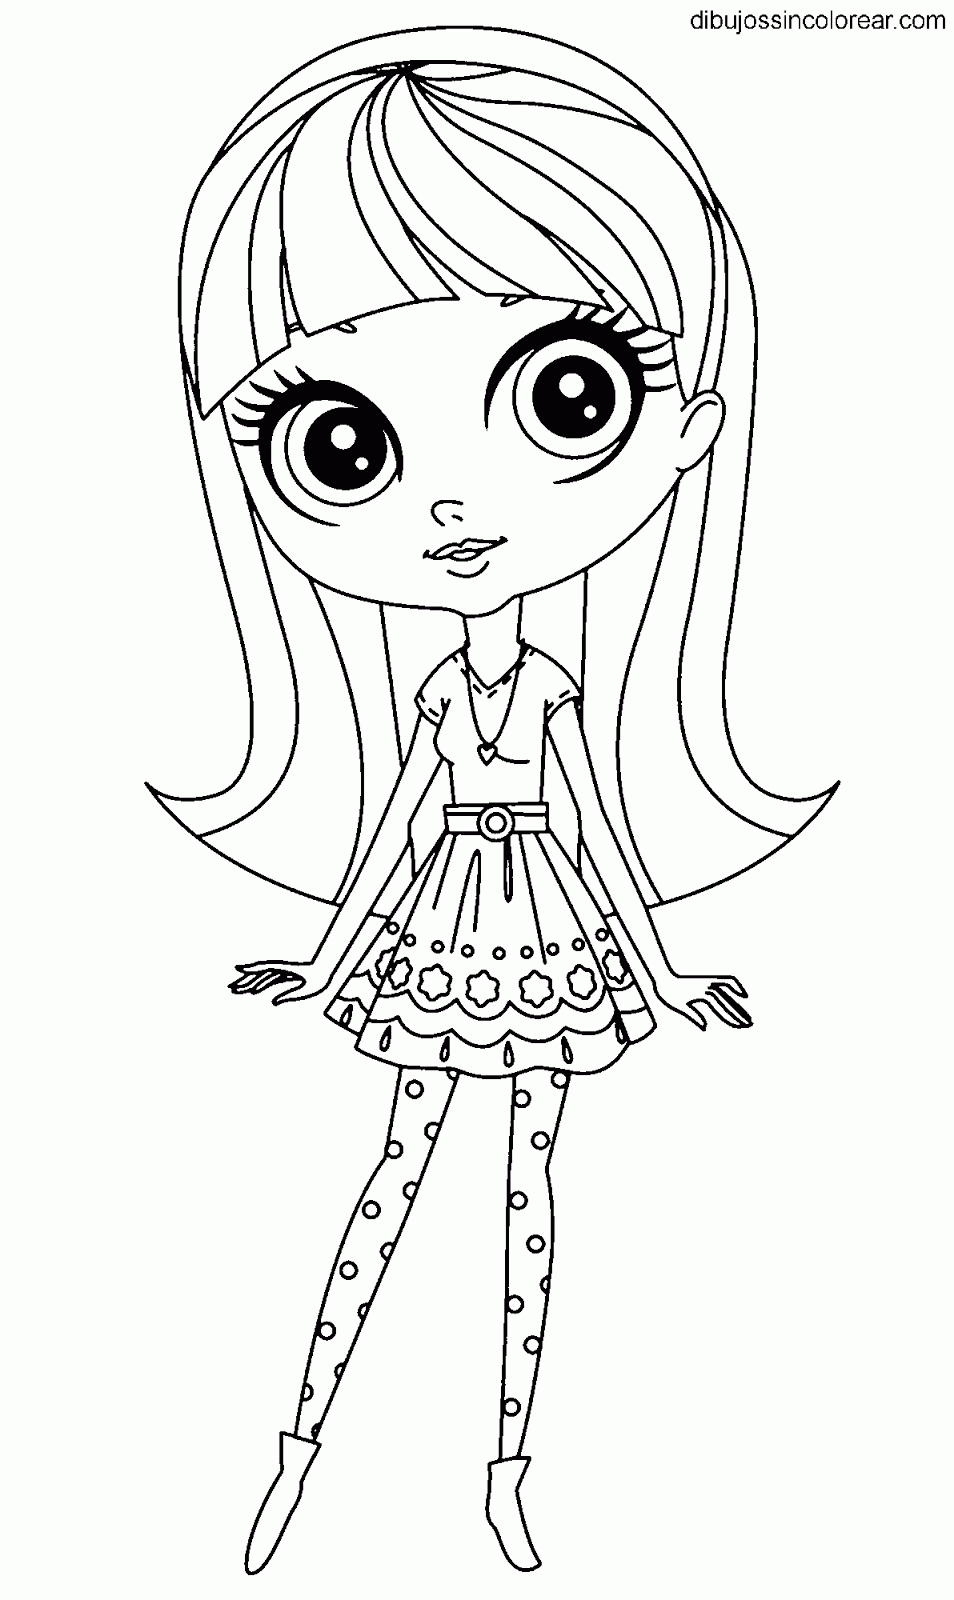 23 Angelina Ballerina Coloring Pages Collections | FREE COLORING PAGES